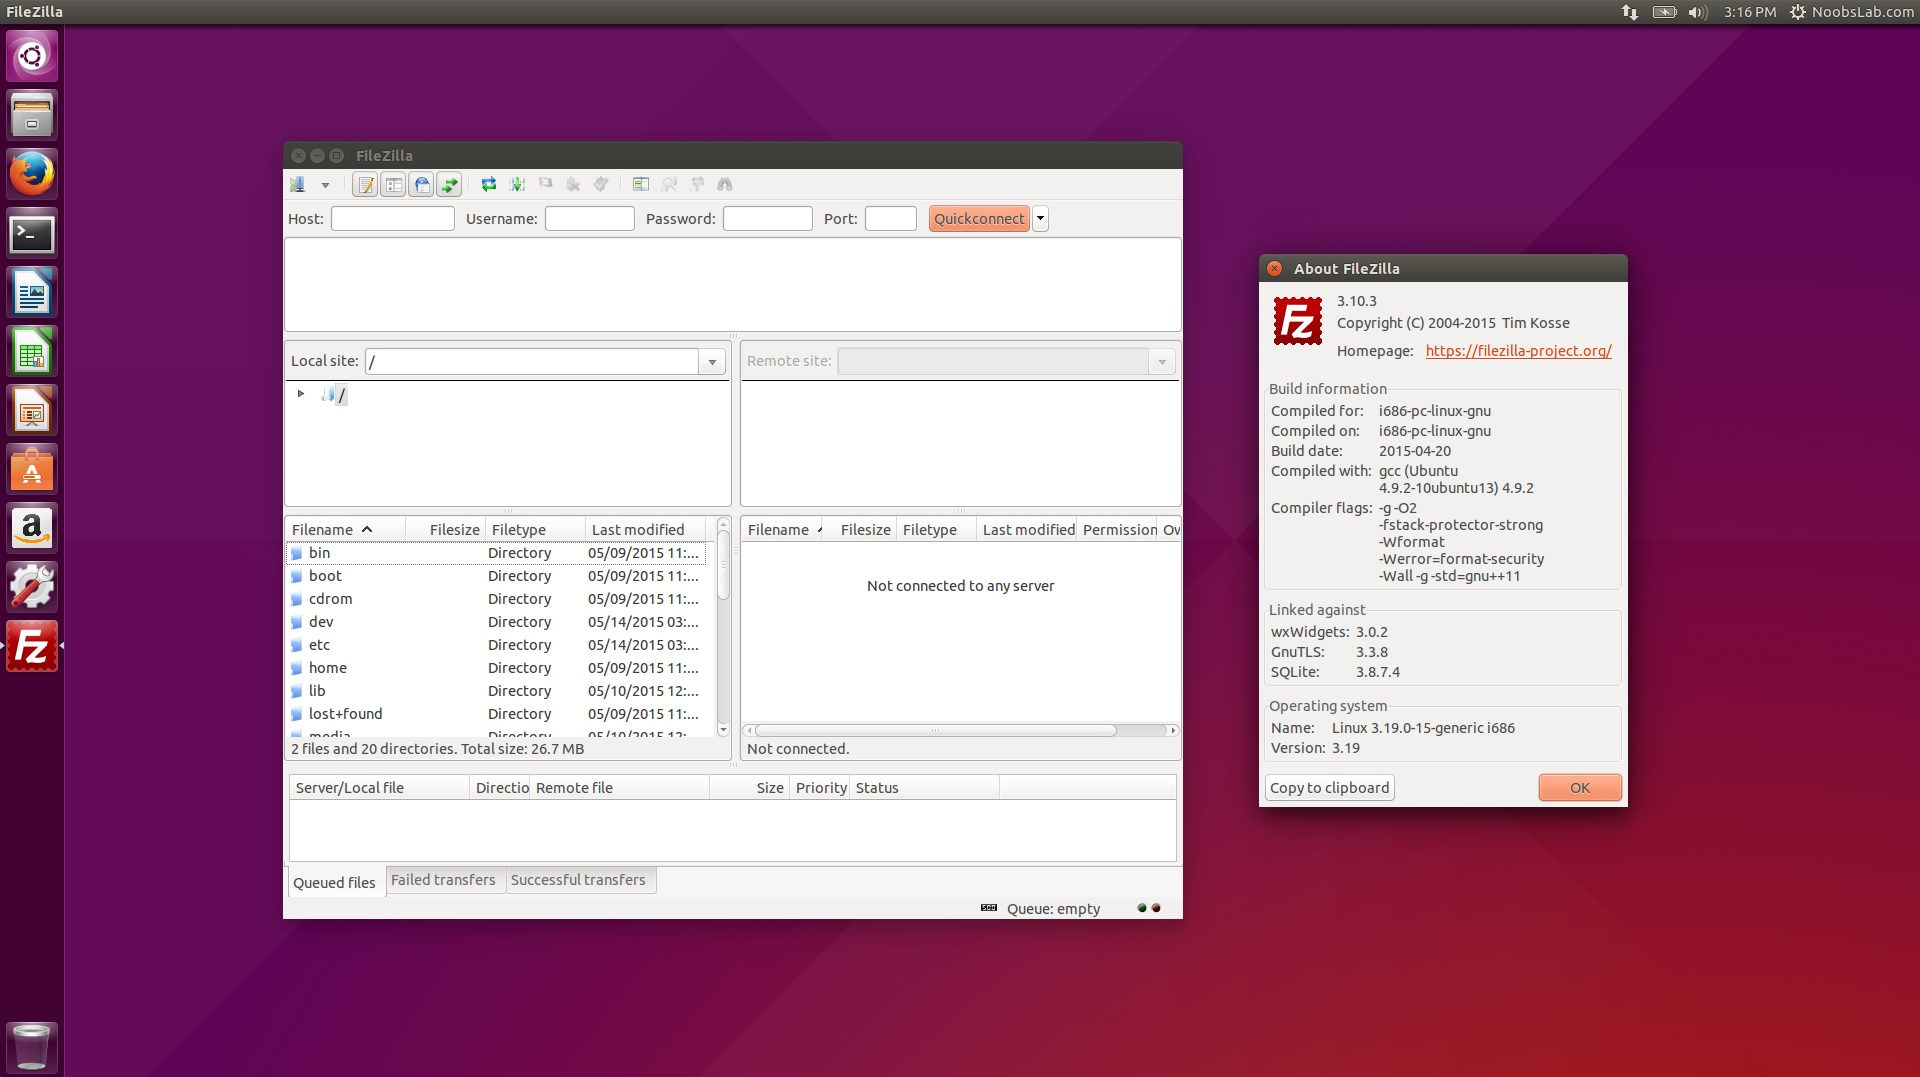 filezilla ftp client available for ubuntu linux